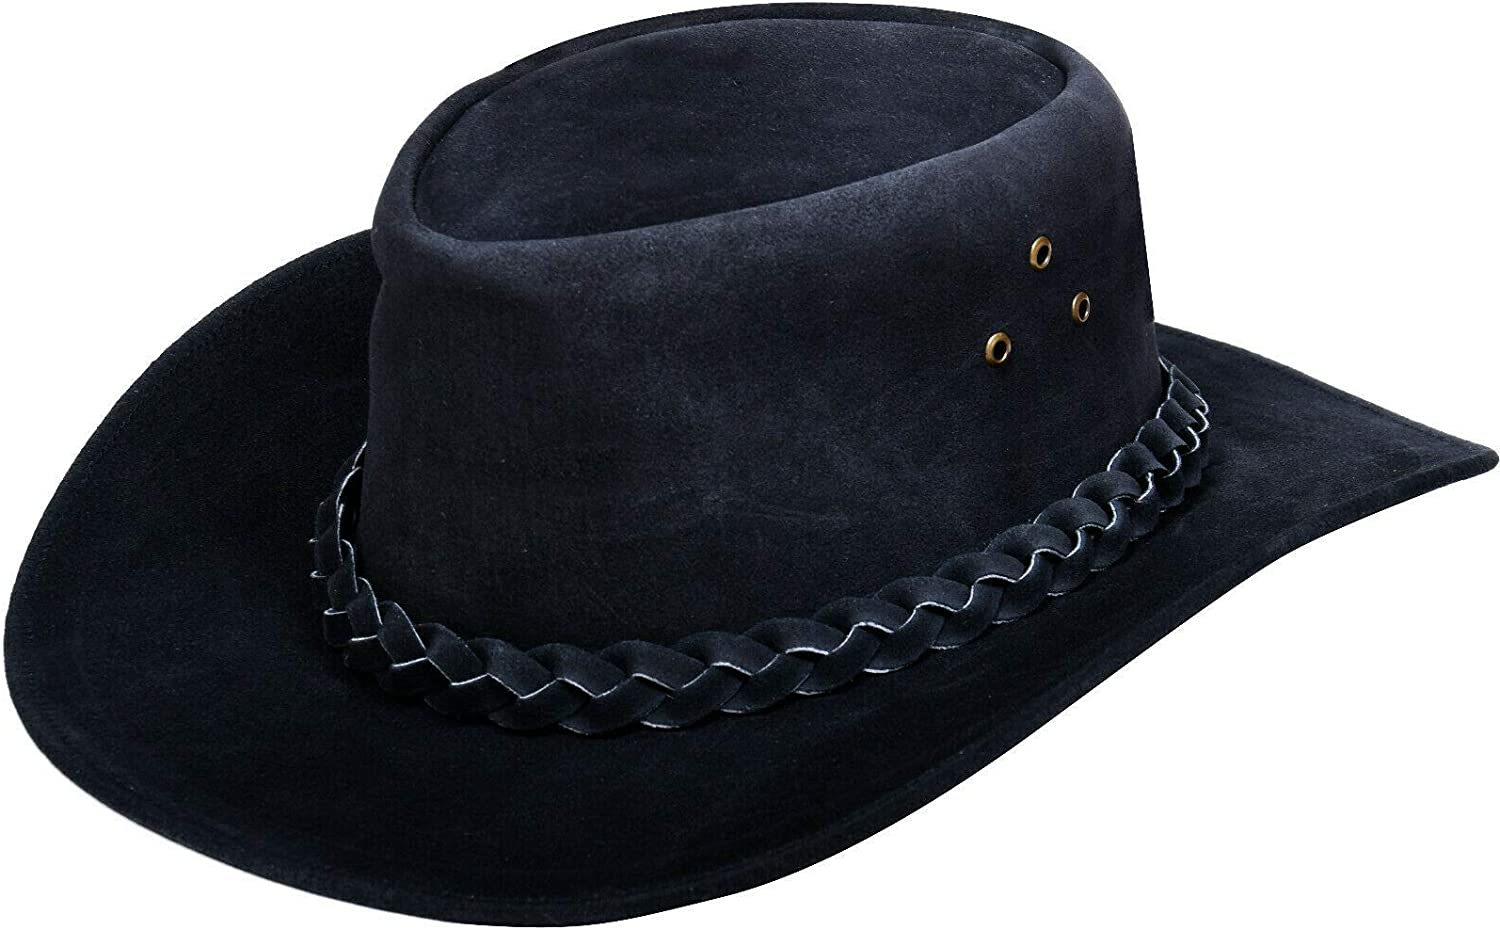 Australian Unisex Popular brand in the world Western Style Max 87% OFF Cowboy Outback Leathe Real Suede